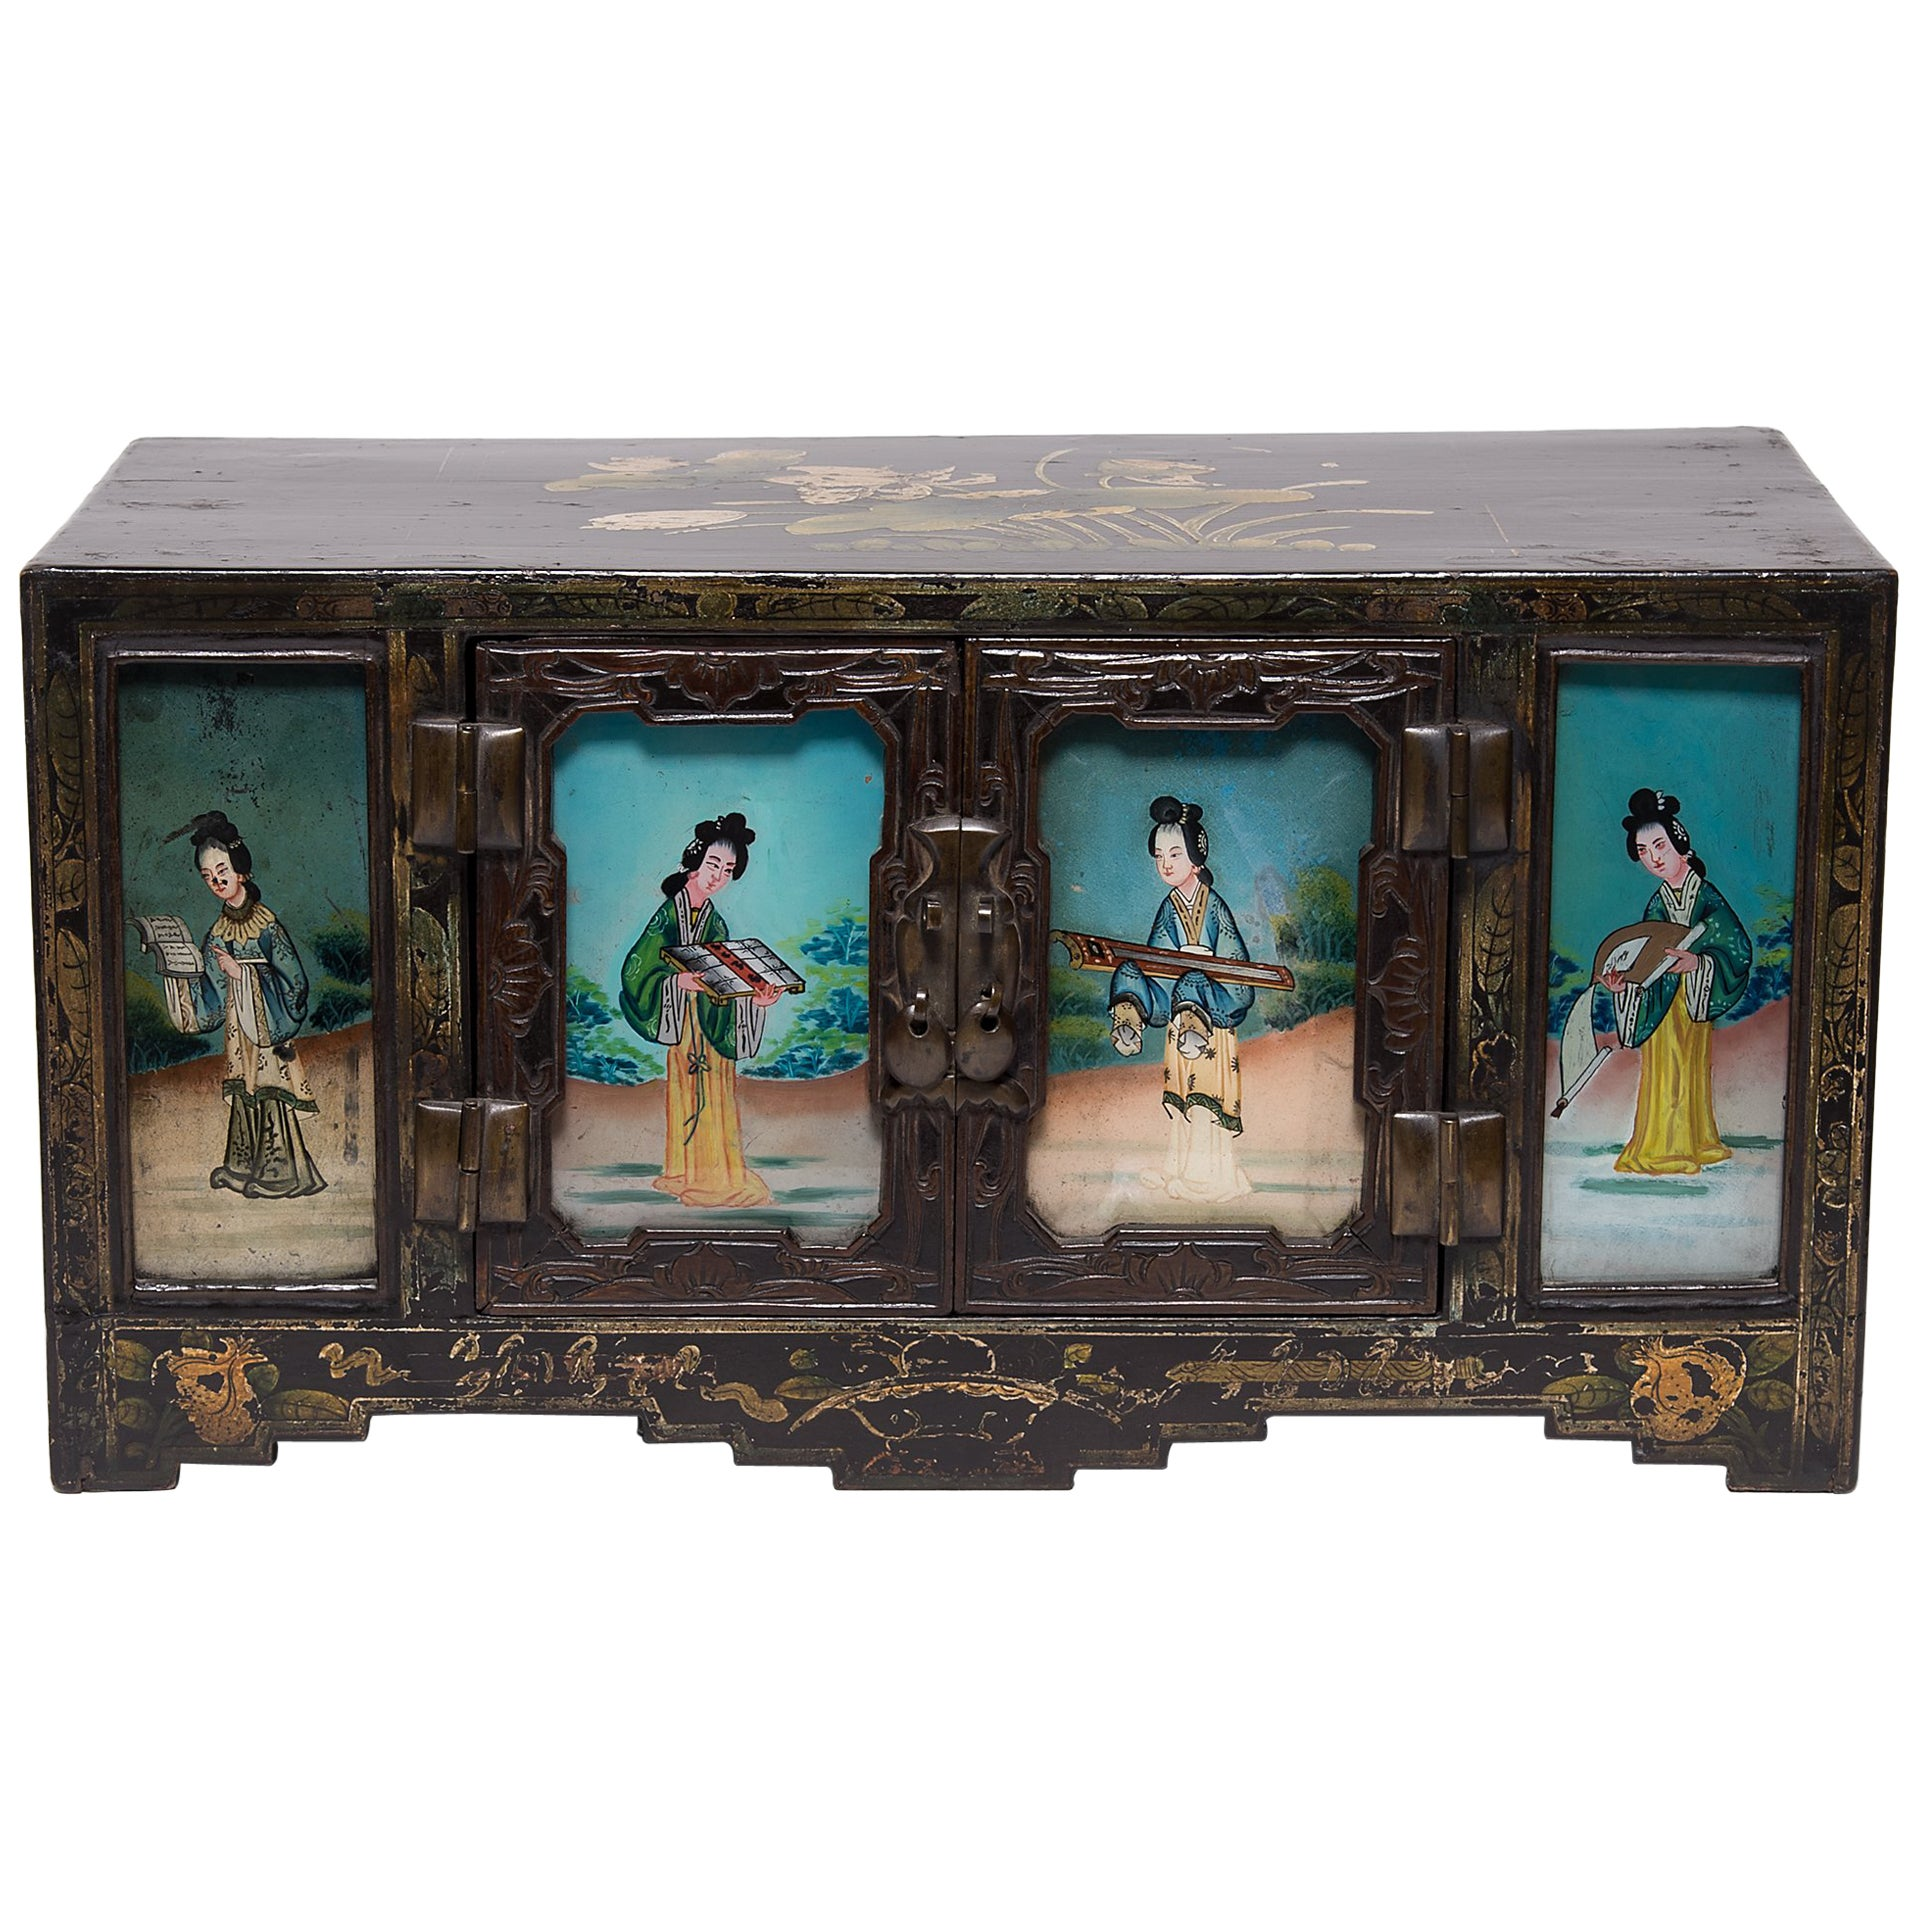 Chinese Treasure Chest with Reverse Glass Painted Panels. c. 1850